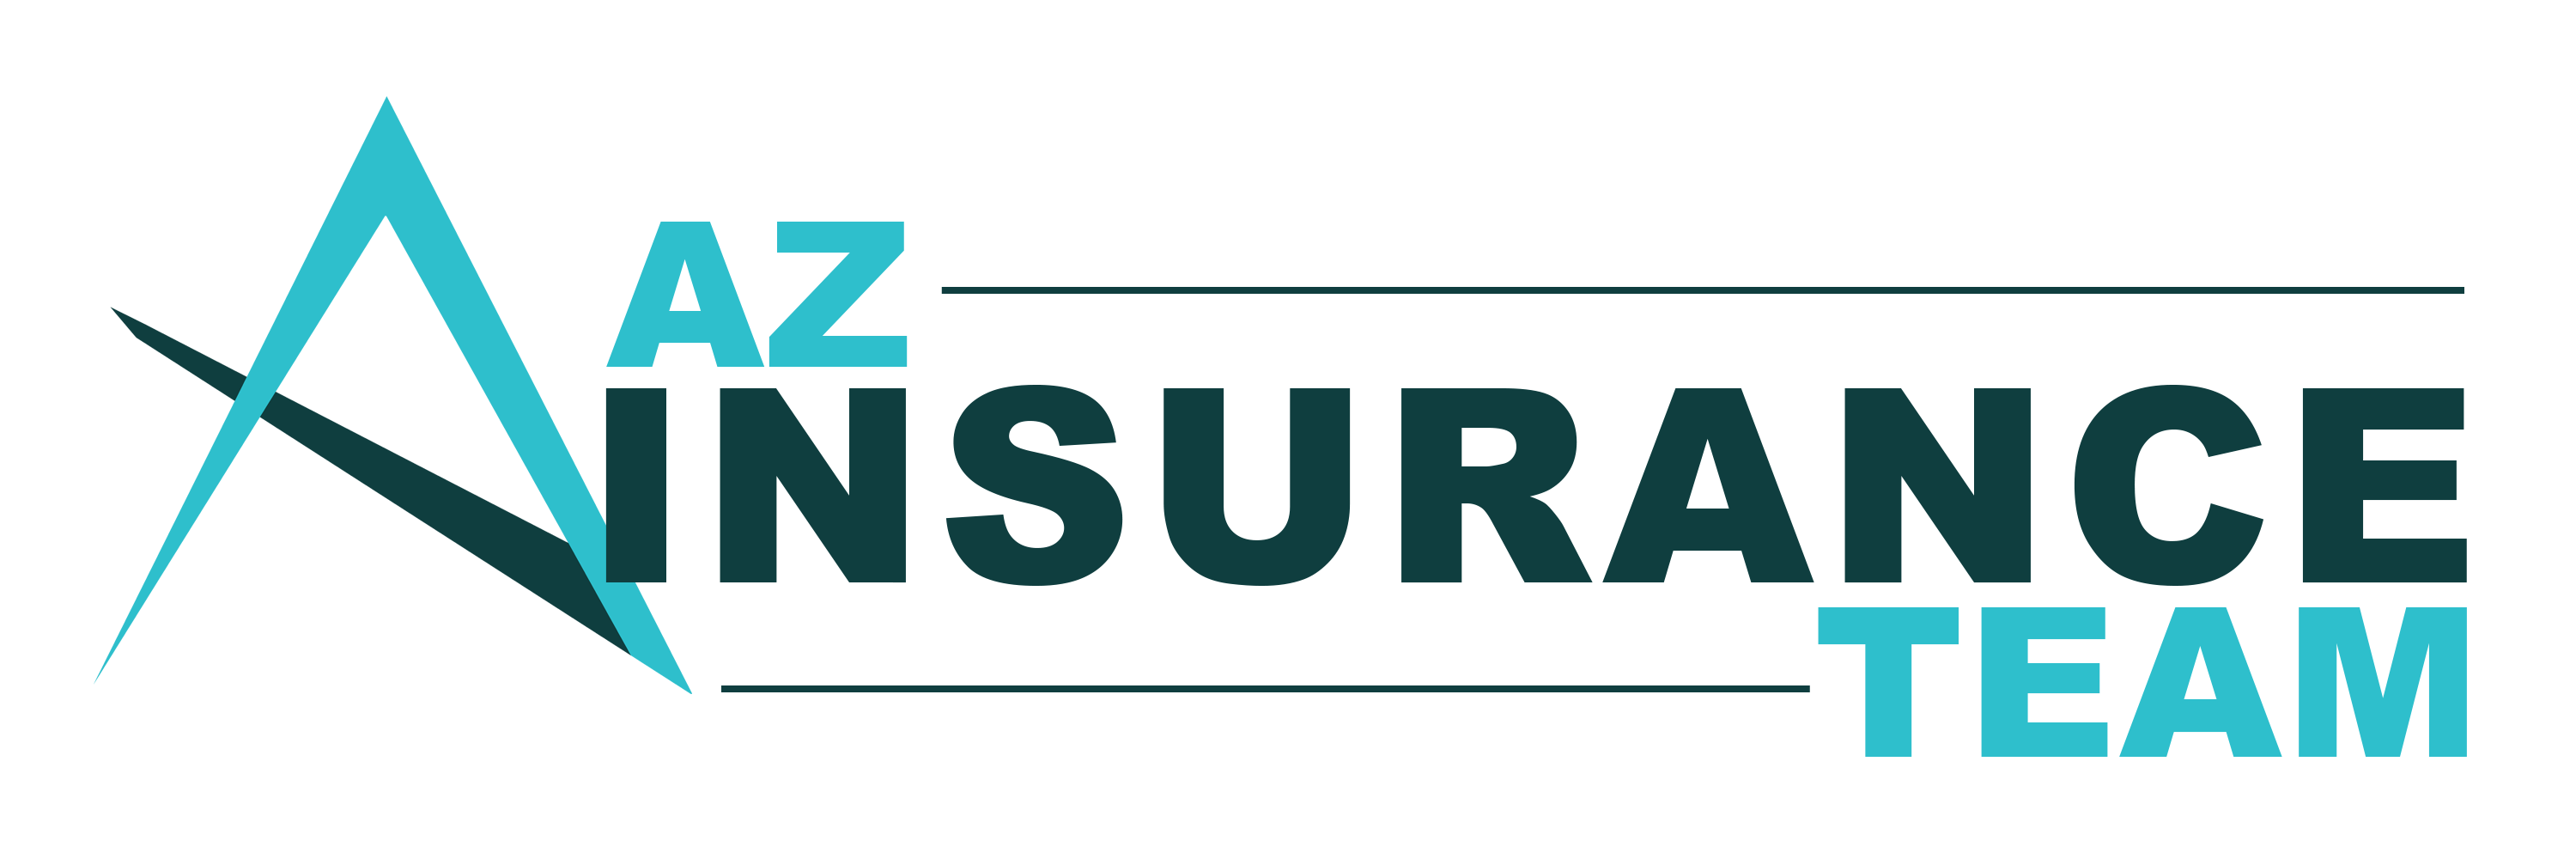 Az Insurance Team  Tempe Insurance Agency. Glatiramer Acetate Generic Canada Smart Grid. Moving Companies Quotes Online. Decorative Concrete Patio Online Colleges For. Snmp Server Host Command Cars Insurance Rates. Dedicated Web Hosting Reviews. Chiropractor In Houston Texas. Orange County Bail Bondsman Rail Dock Plates. Storage Units In Tucson Az Home Deposit Loan